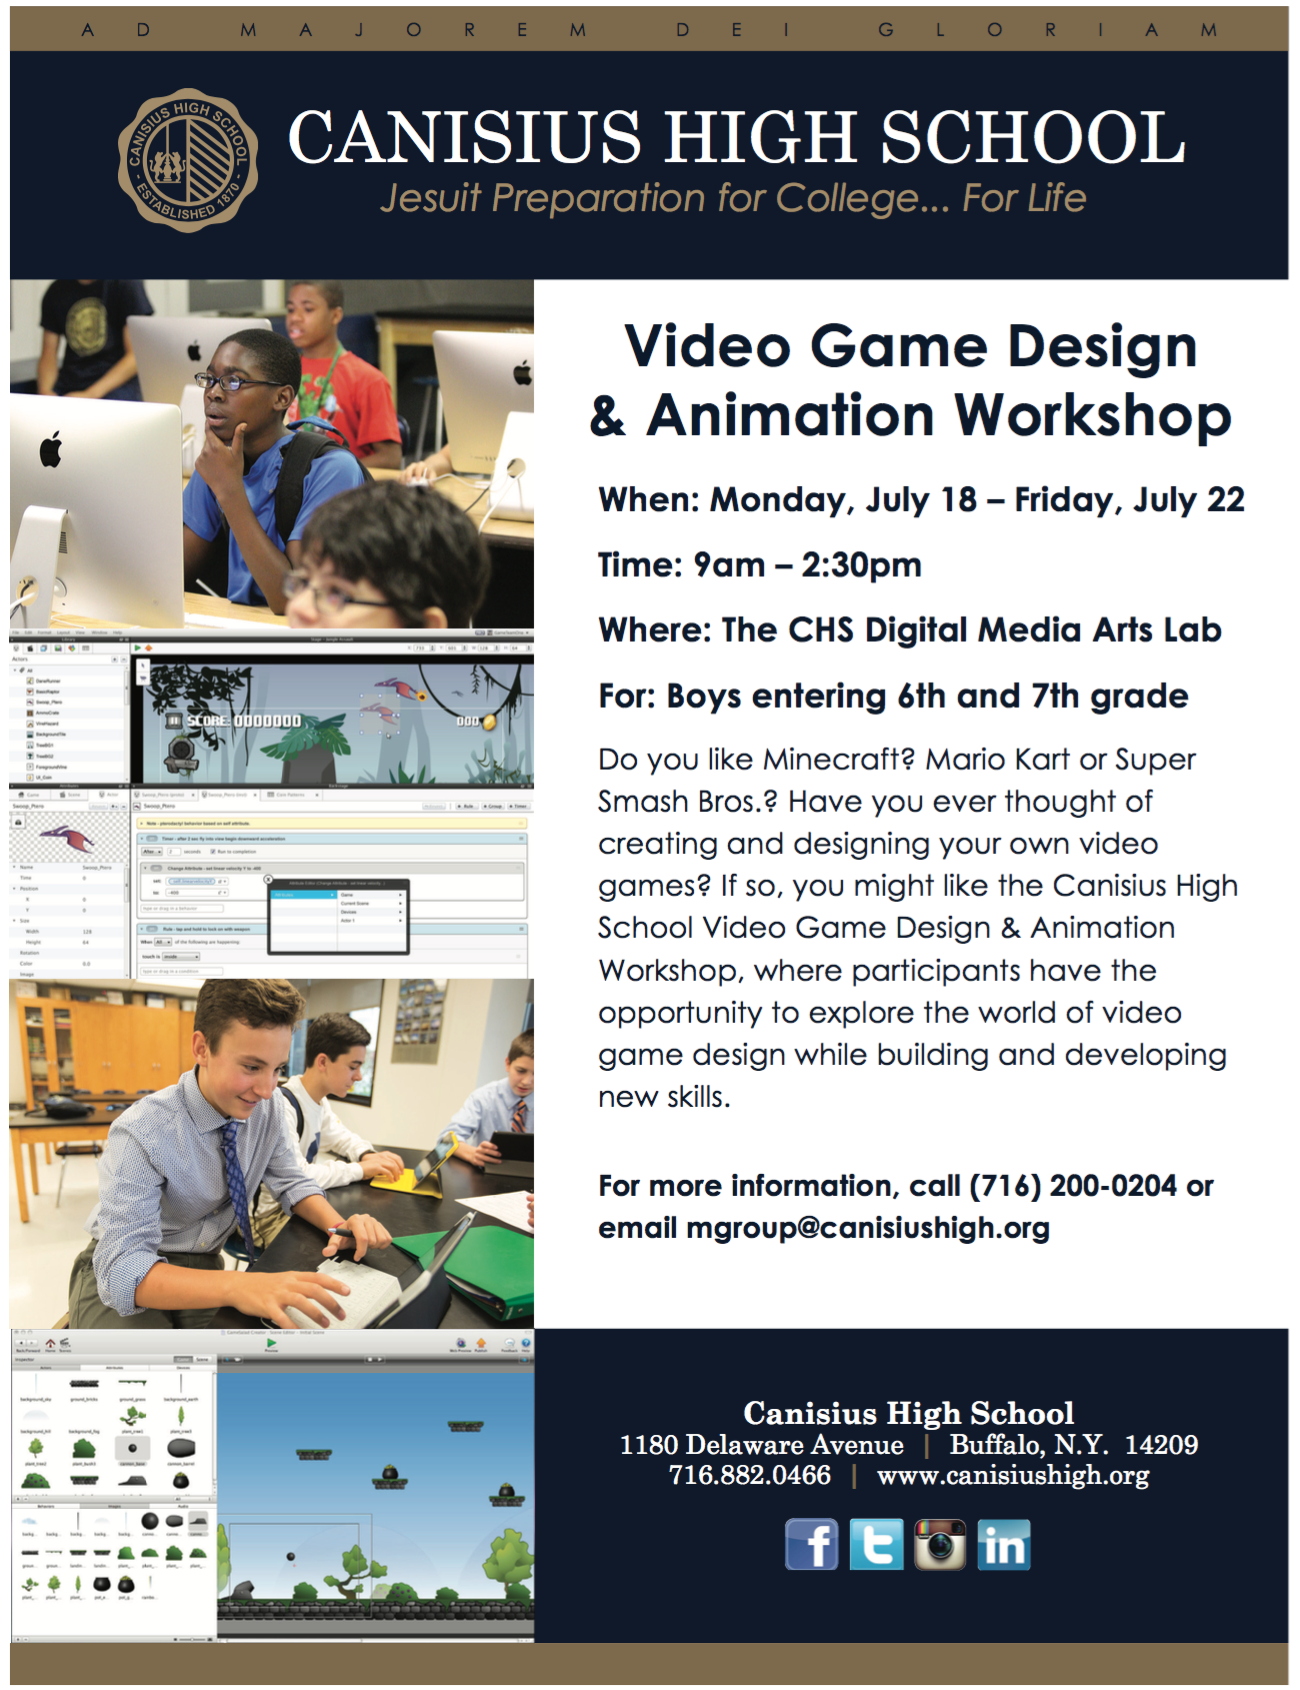 Video Game Design Workshop At Chs Canisius High School